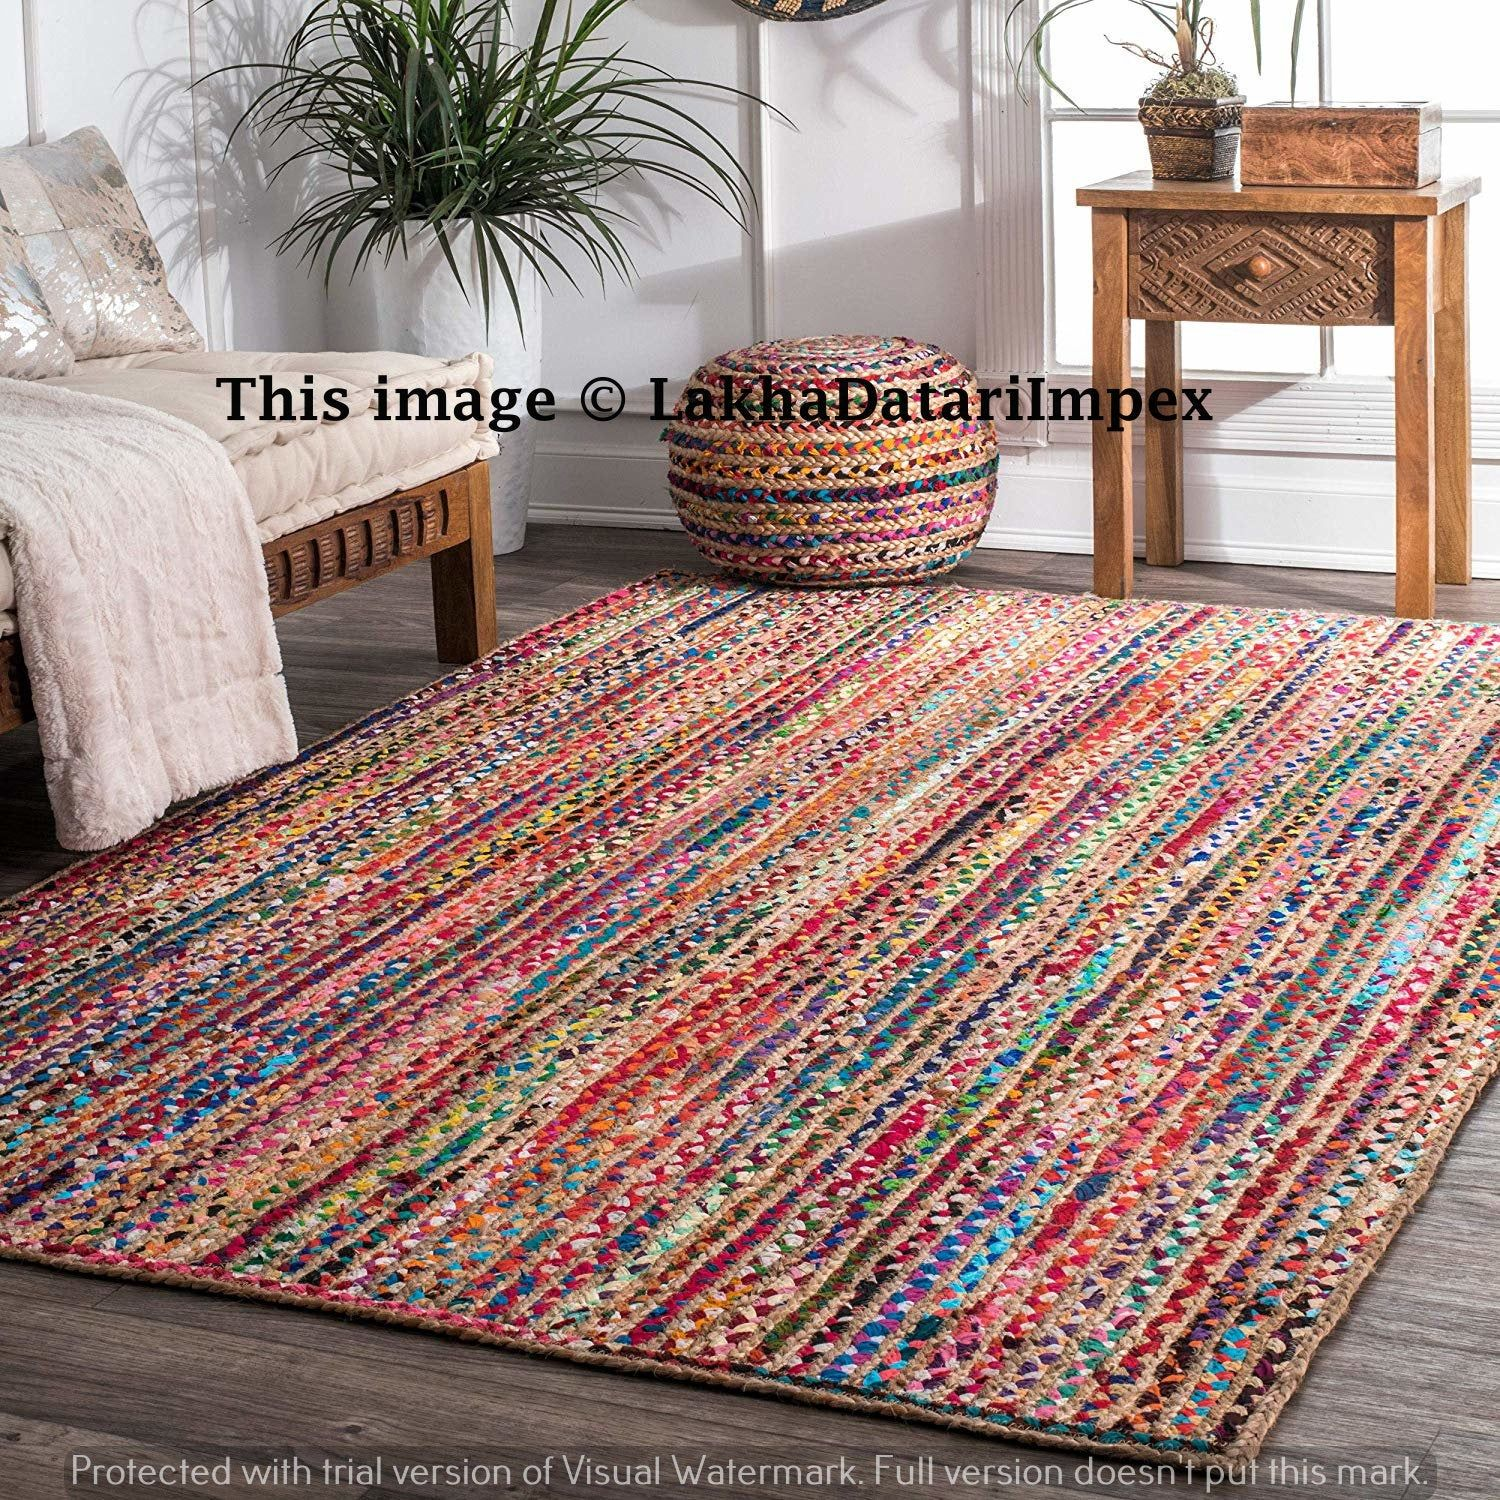 Pin On Rugs Area Rugs Chindi Rug Home Decor Rug Cotton Rug Jute